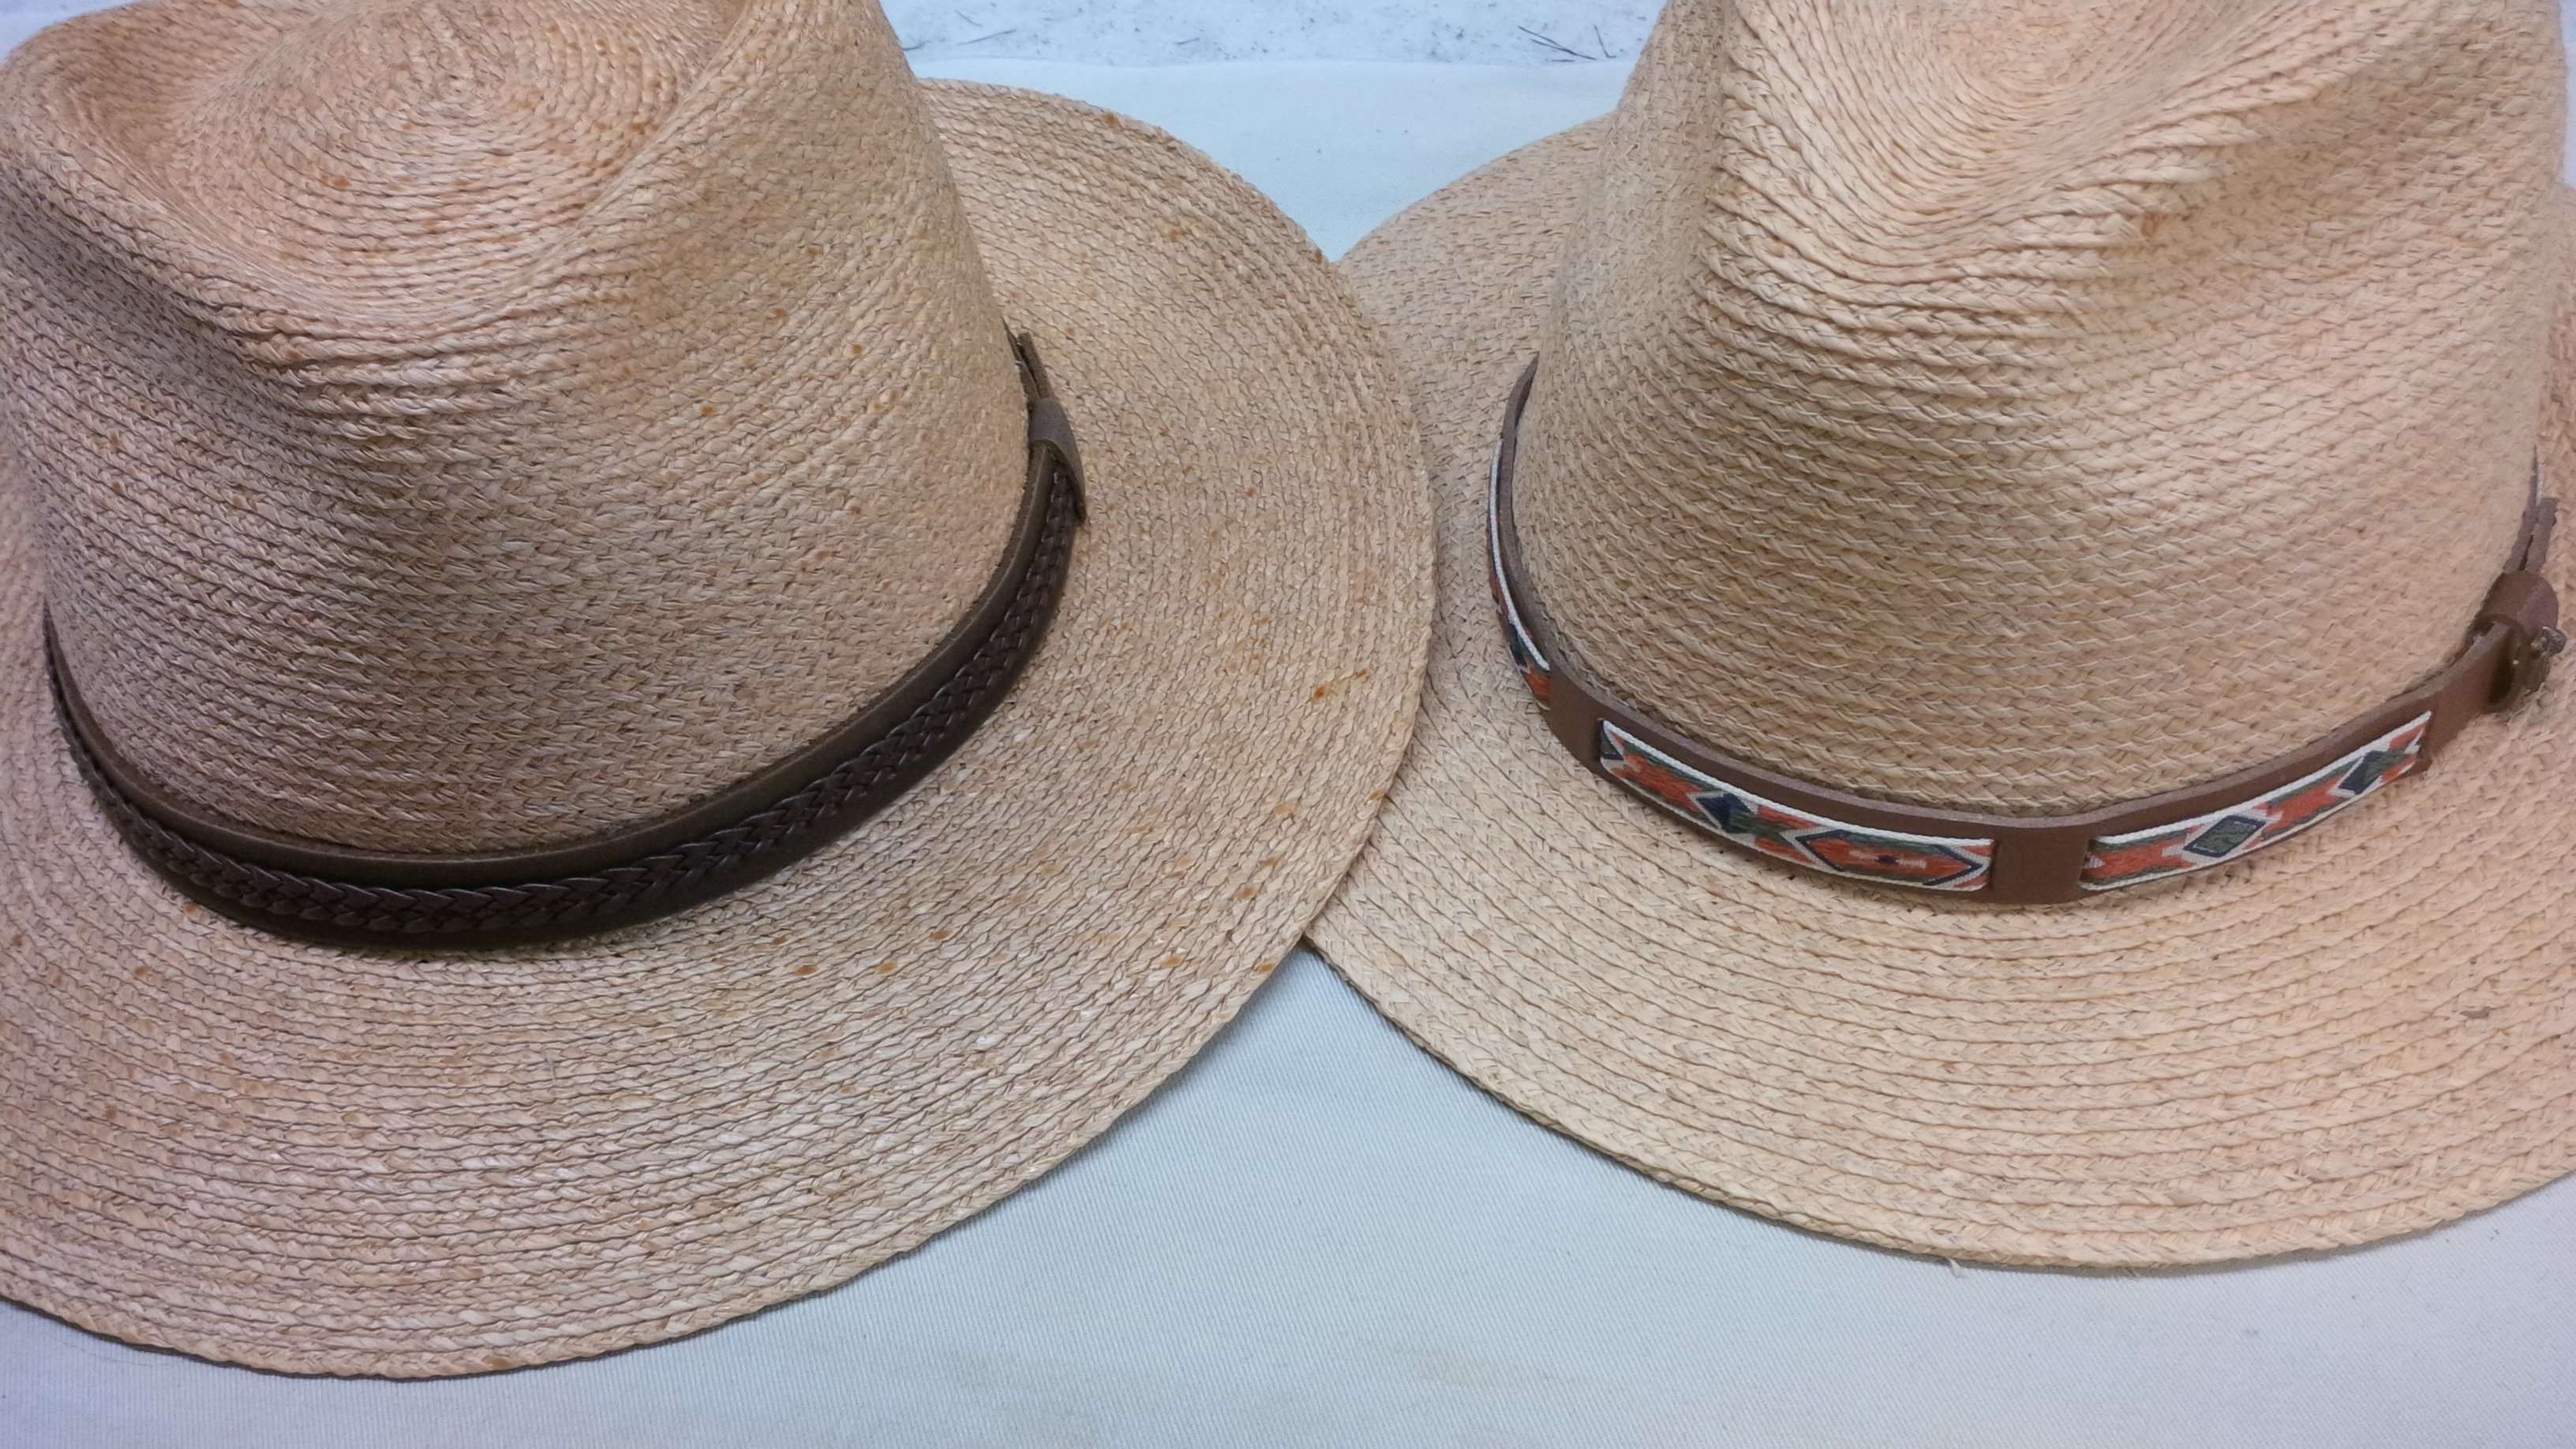 Private Label Raffia Braid Hats for an Iconic Canadian Brand